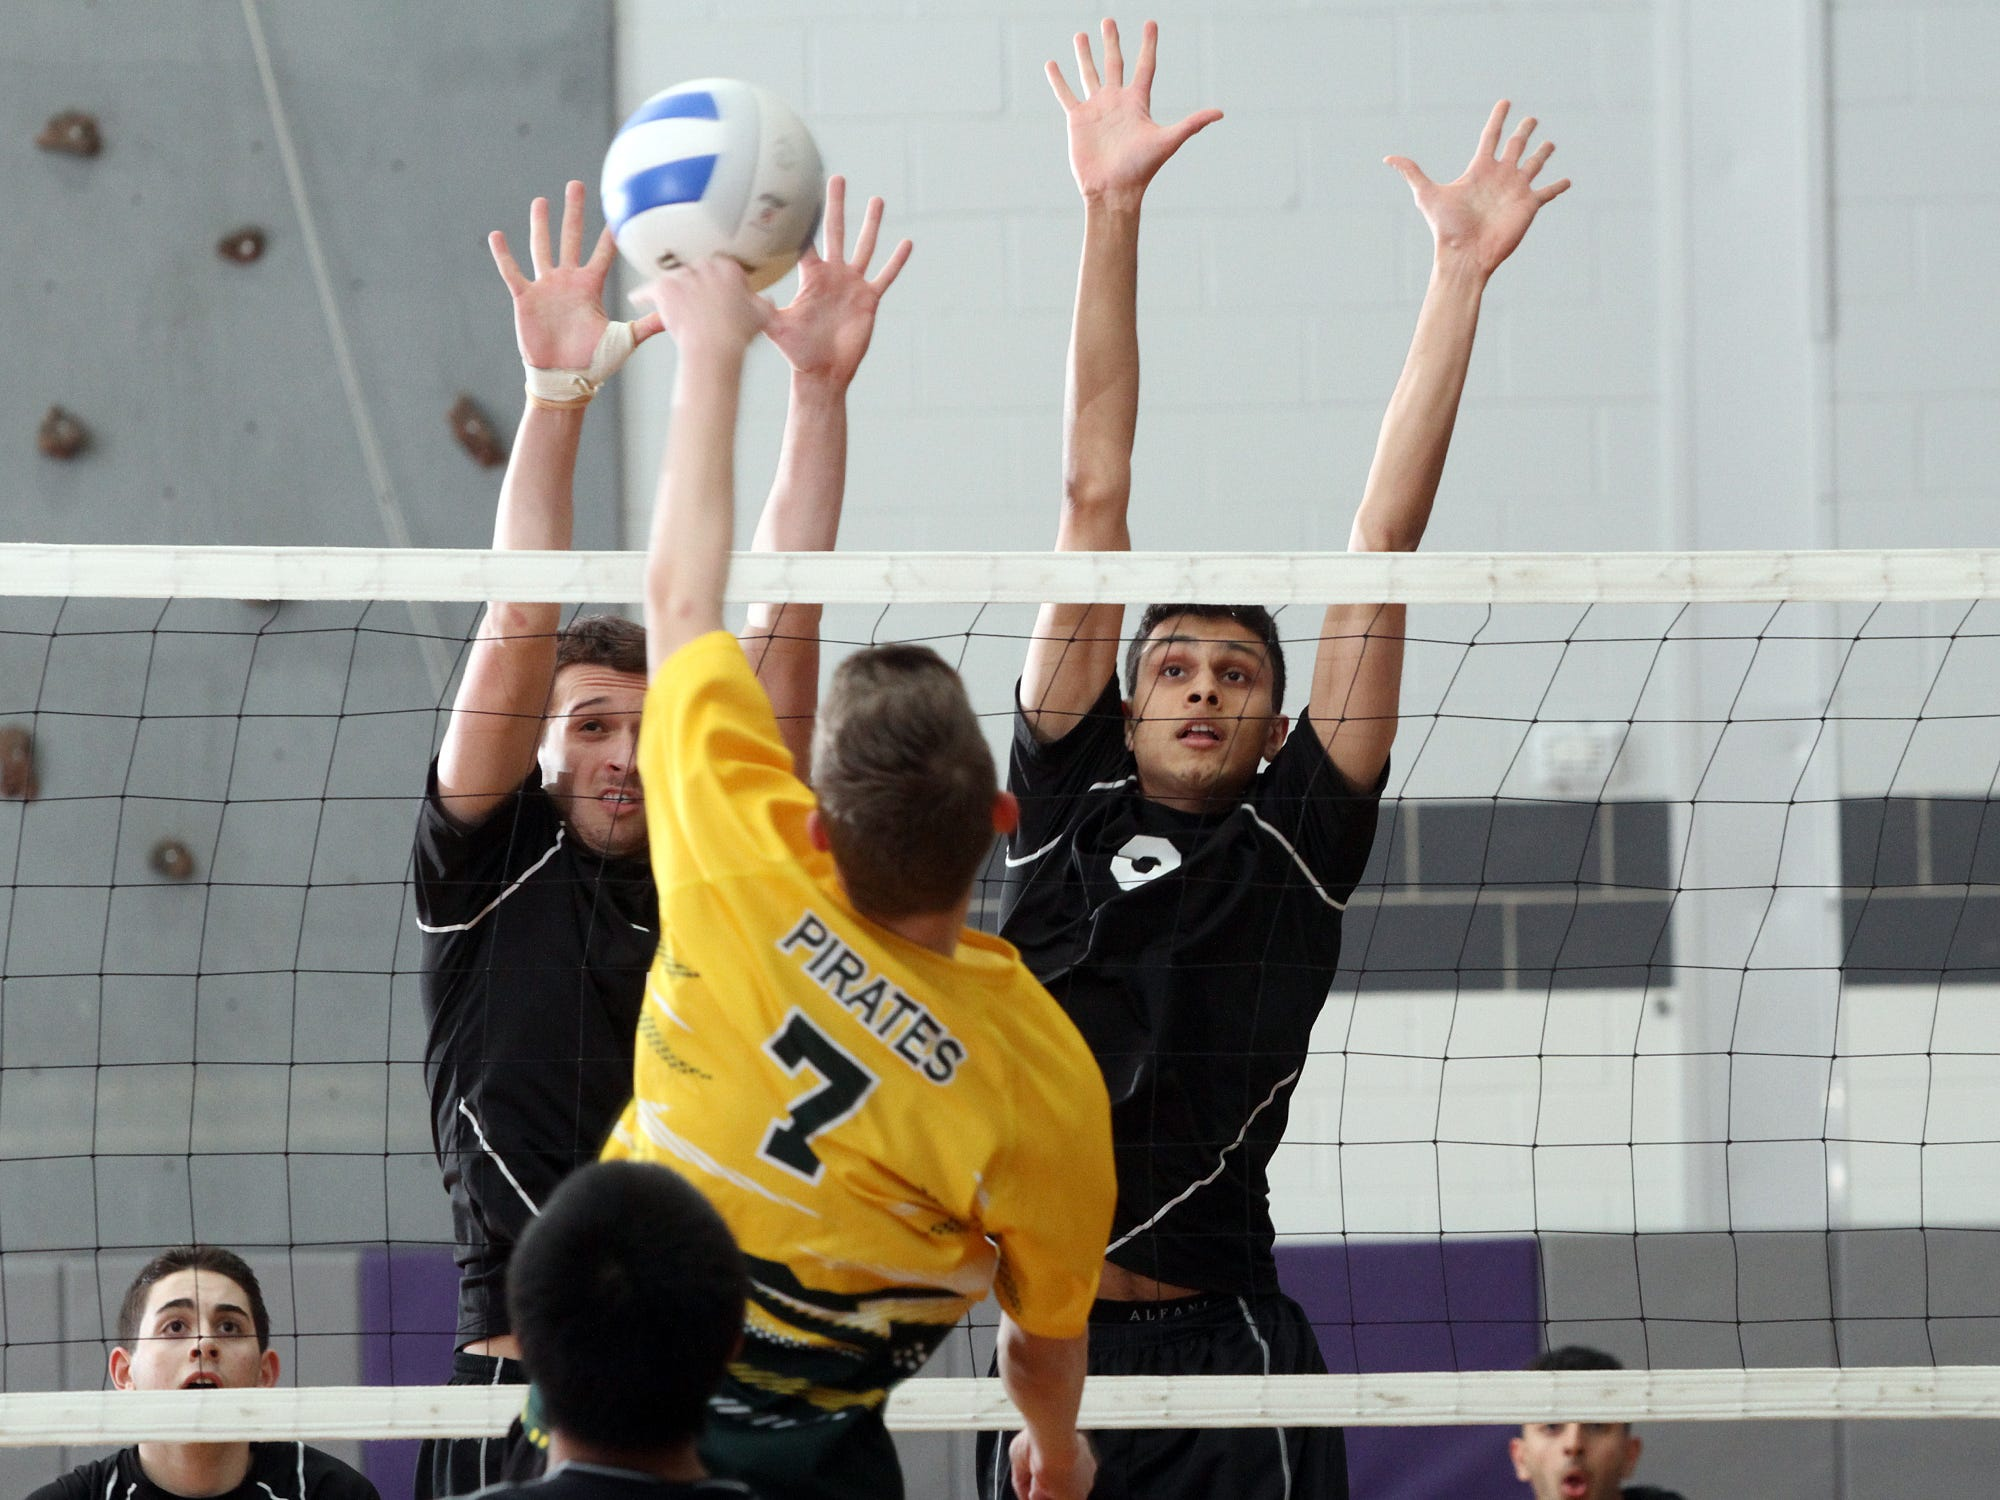 Robert Meyer (left) and Dhruv Patel of Old Bridge look to block a shot by West Windsor-Plainsboro's Jon Asay, Tuesday, April 21, 2015, in Old Bridge, NJ.